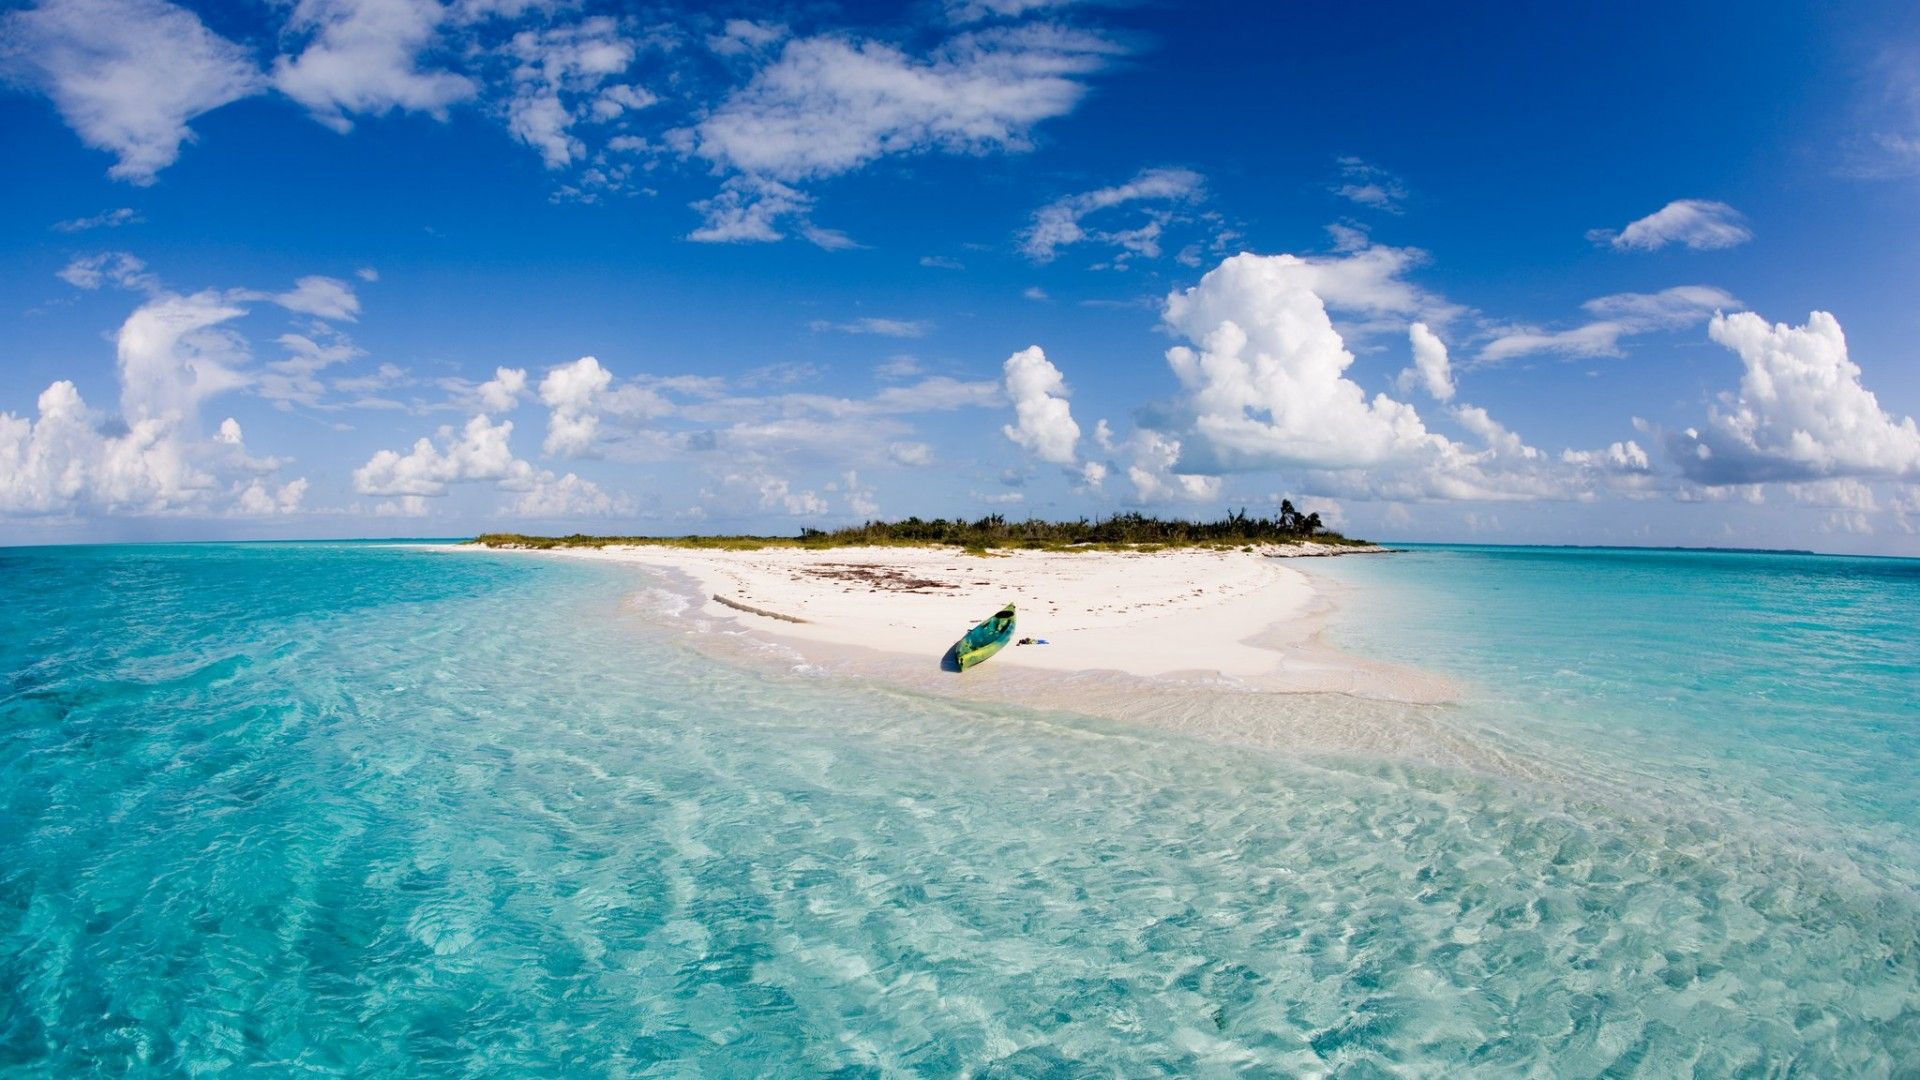 Hd Wallpapers Google Search Tropical Islands To Visit Perfect Beach Vacation Bahamas Island